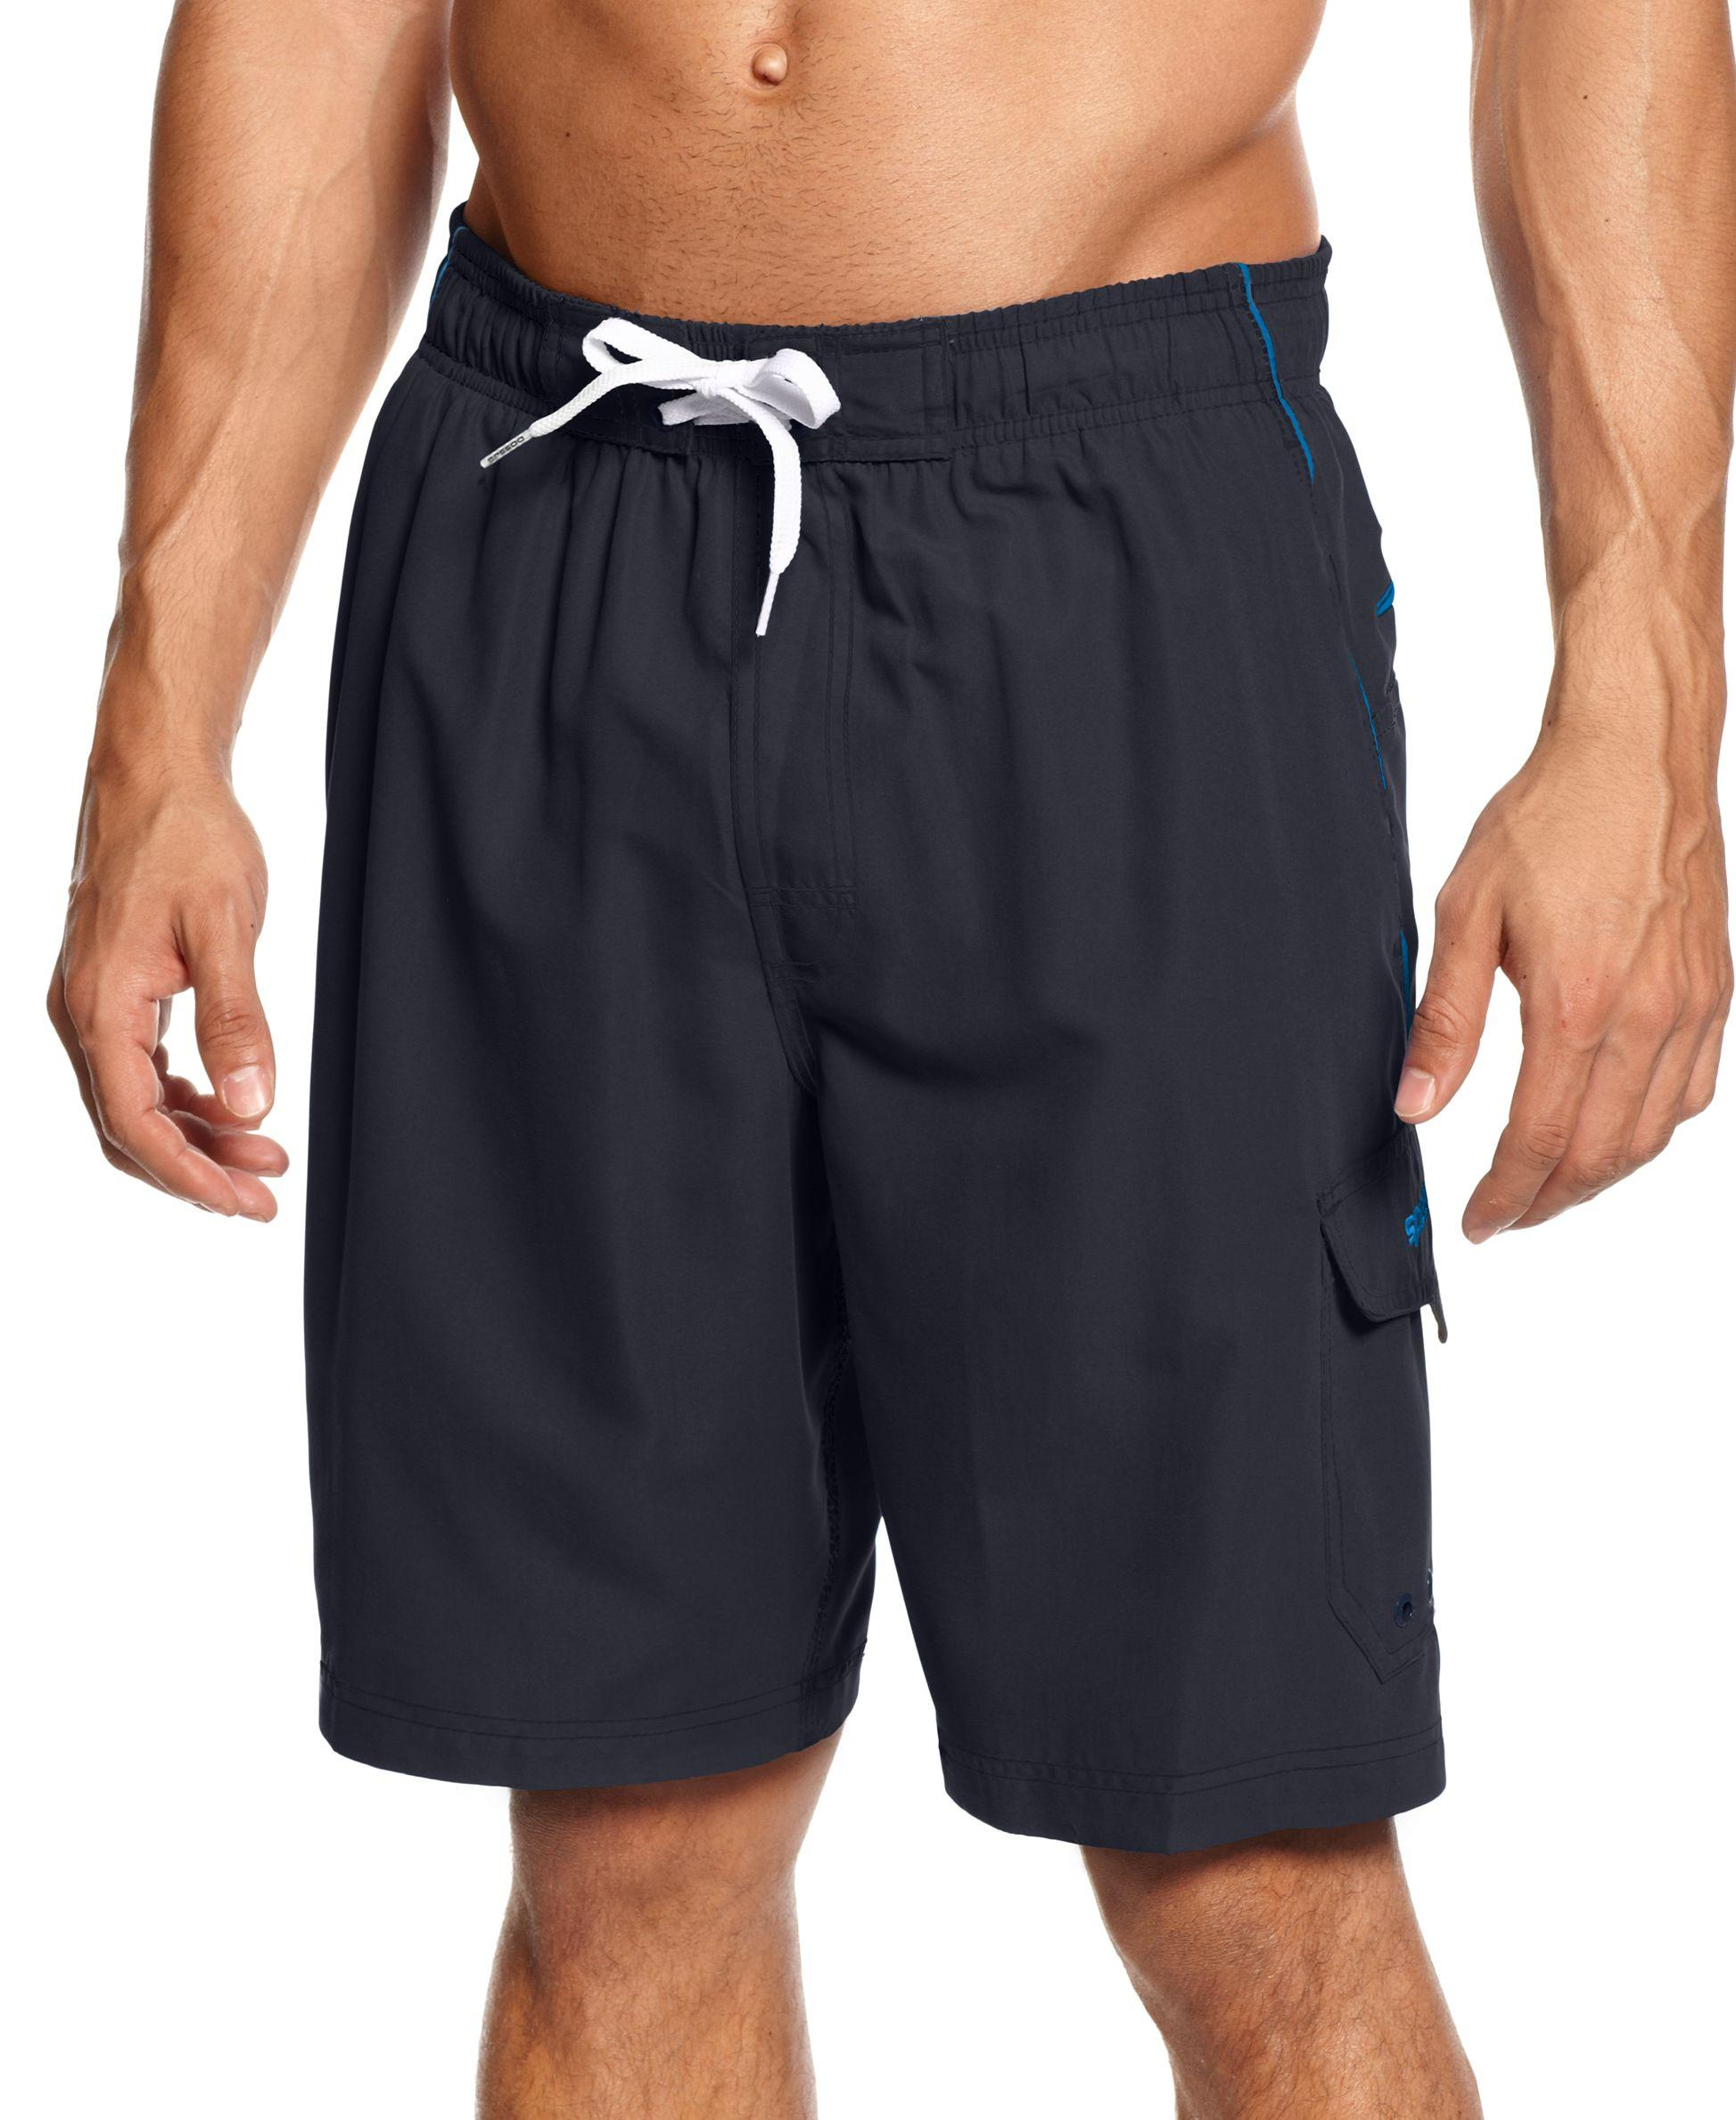 Find great deals on eBay for mens black swim trunks. Shop with confidence.